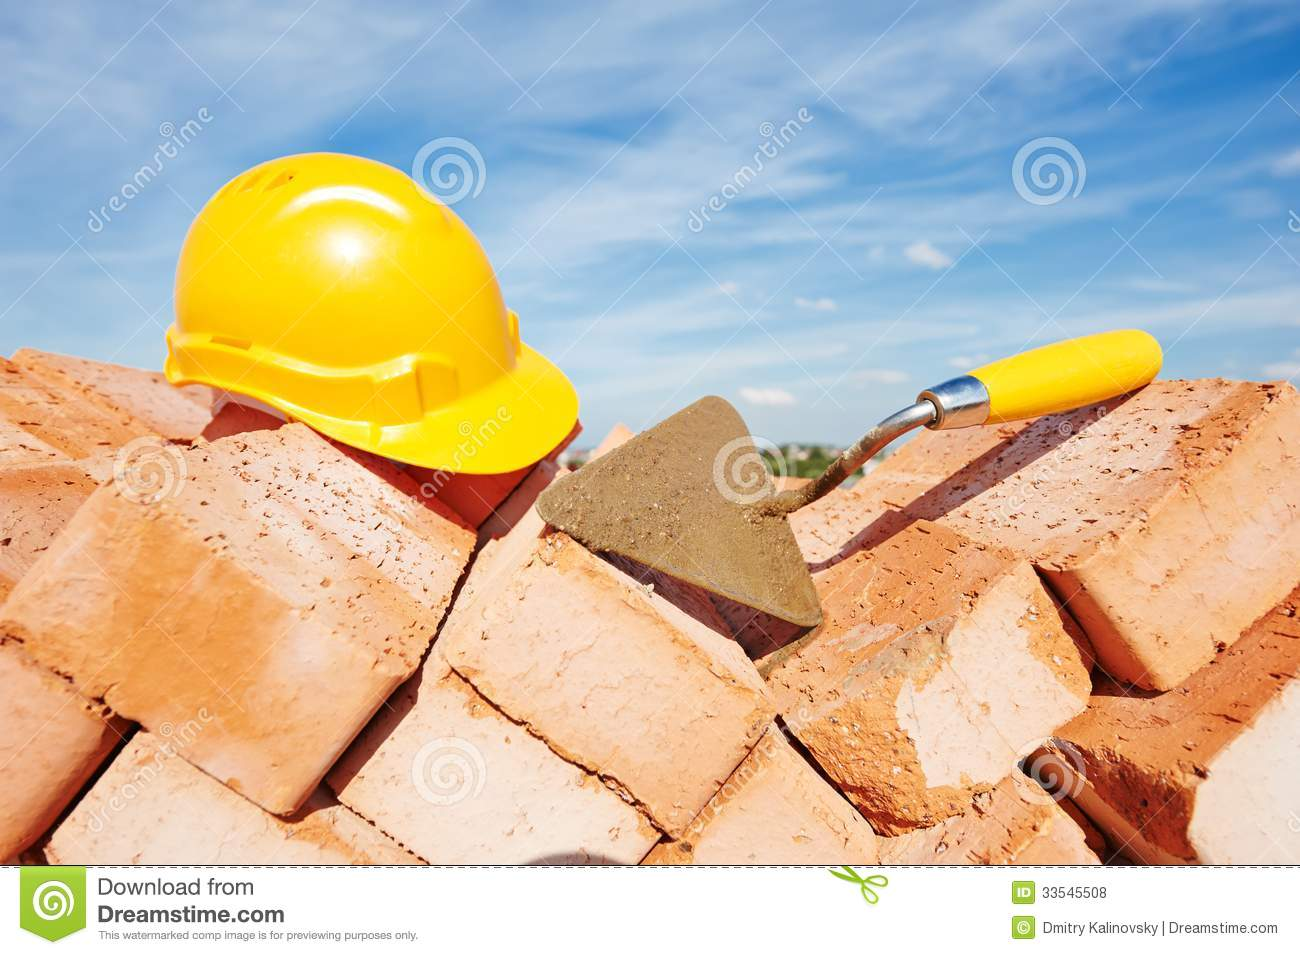 Construction bricklayer tools royalty free stock photos for Builders in my area